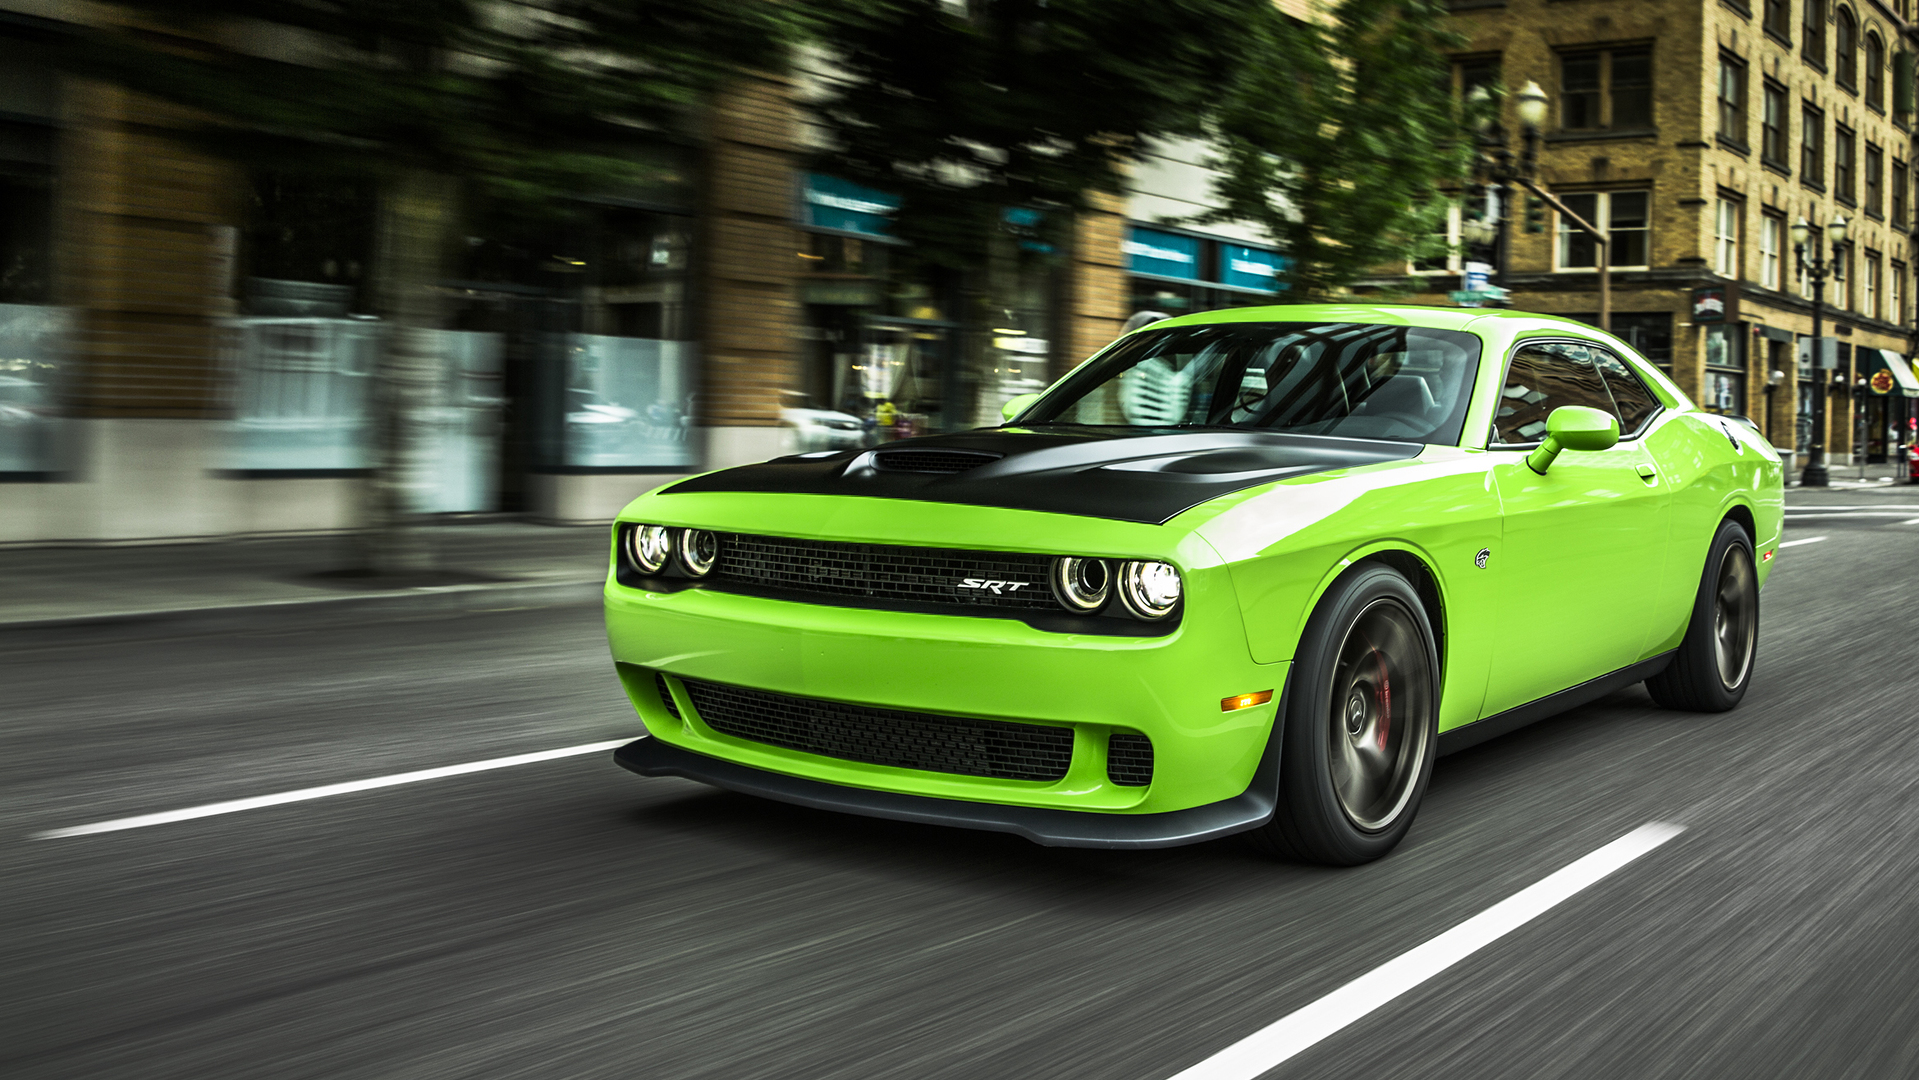 Dodge Challenger SRT Hellcat News and Reviews | Motor1.com